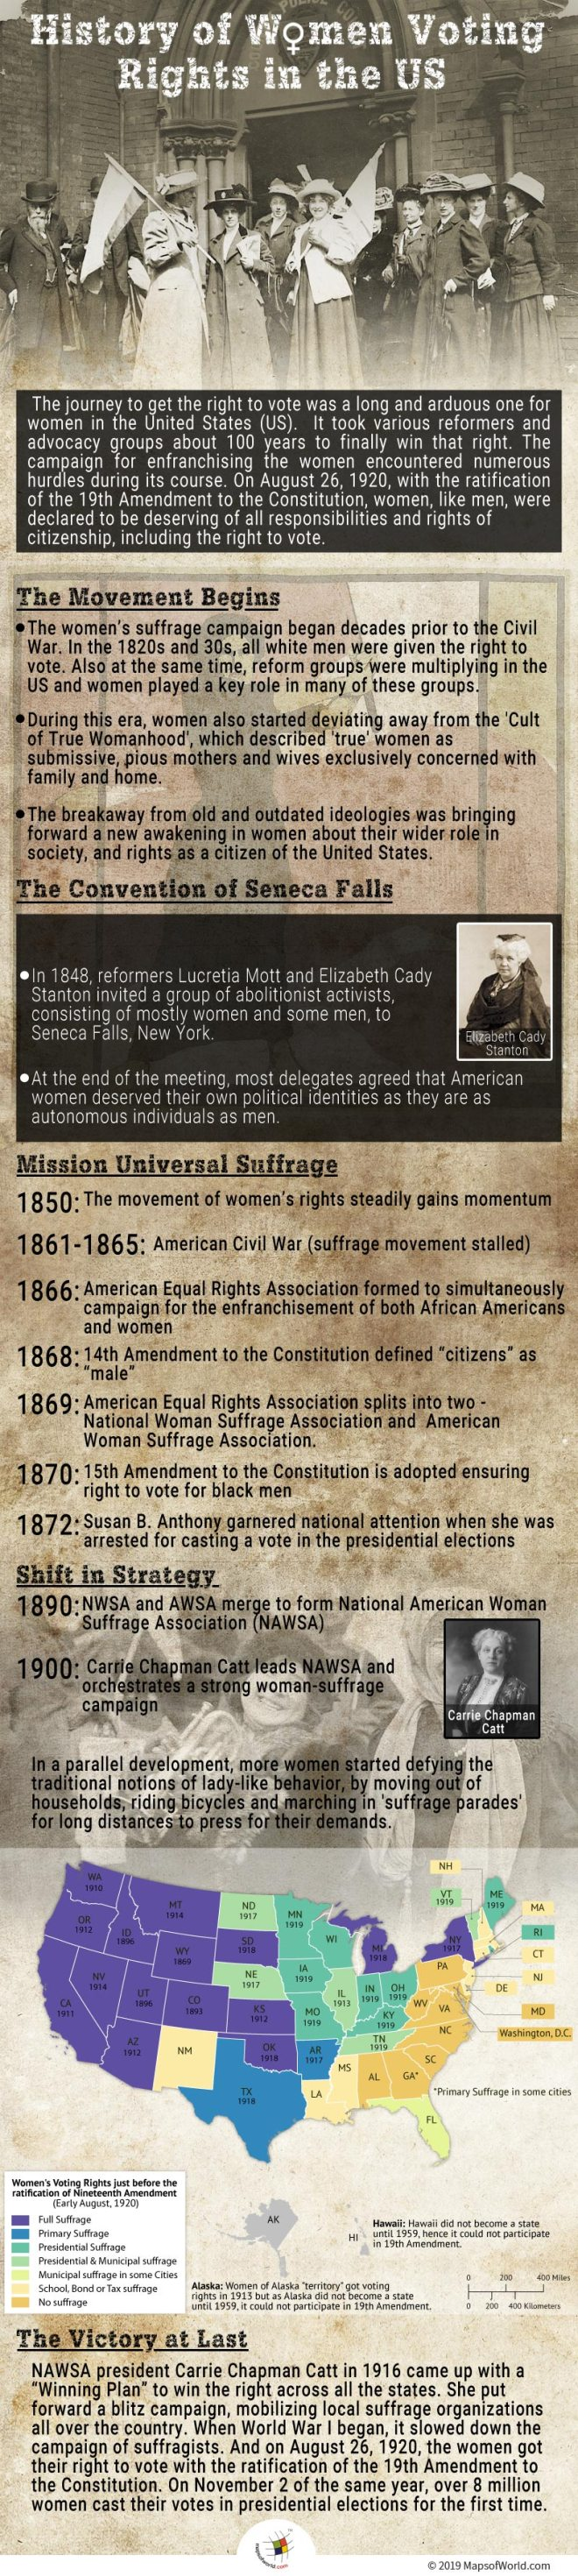 Infographic Giving Details on History of Women's Voting Rights in the US